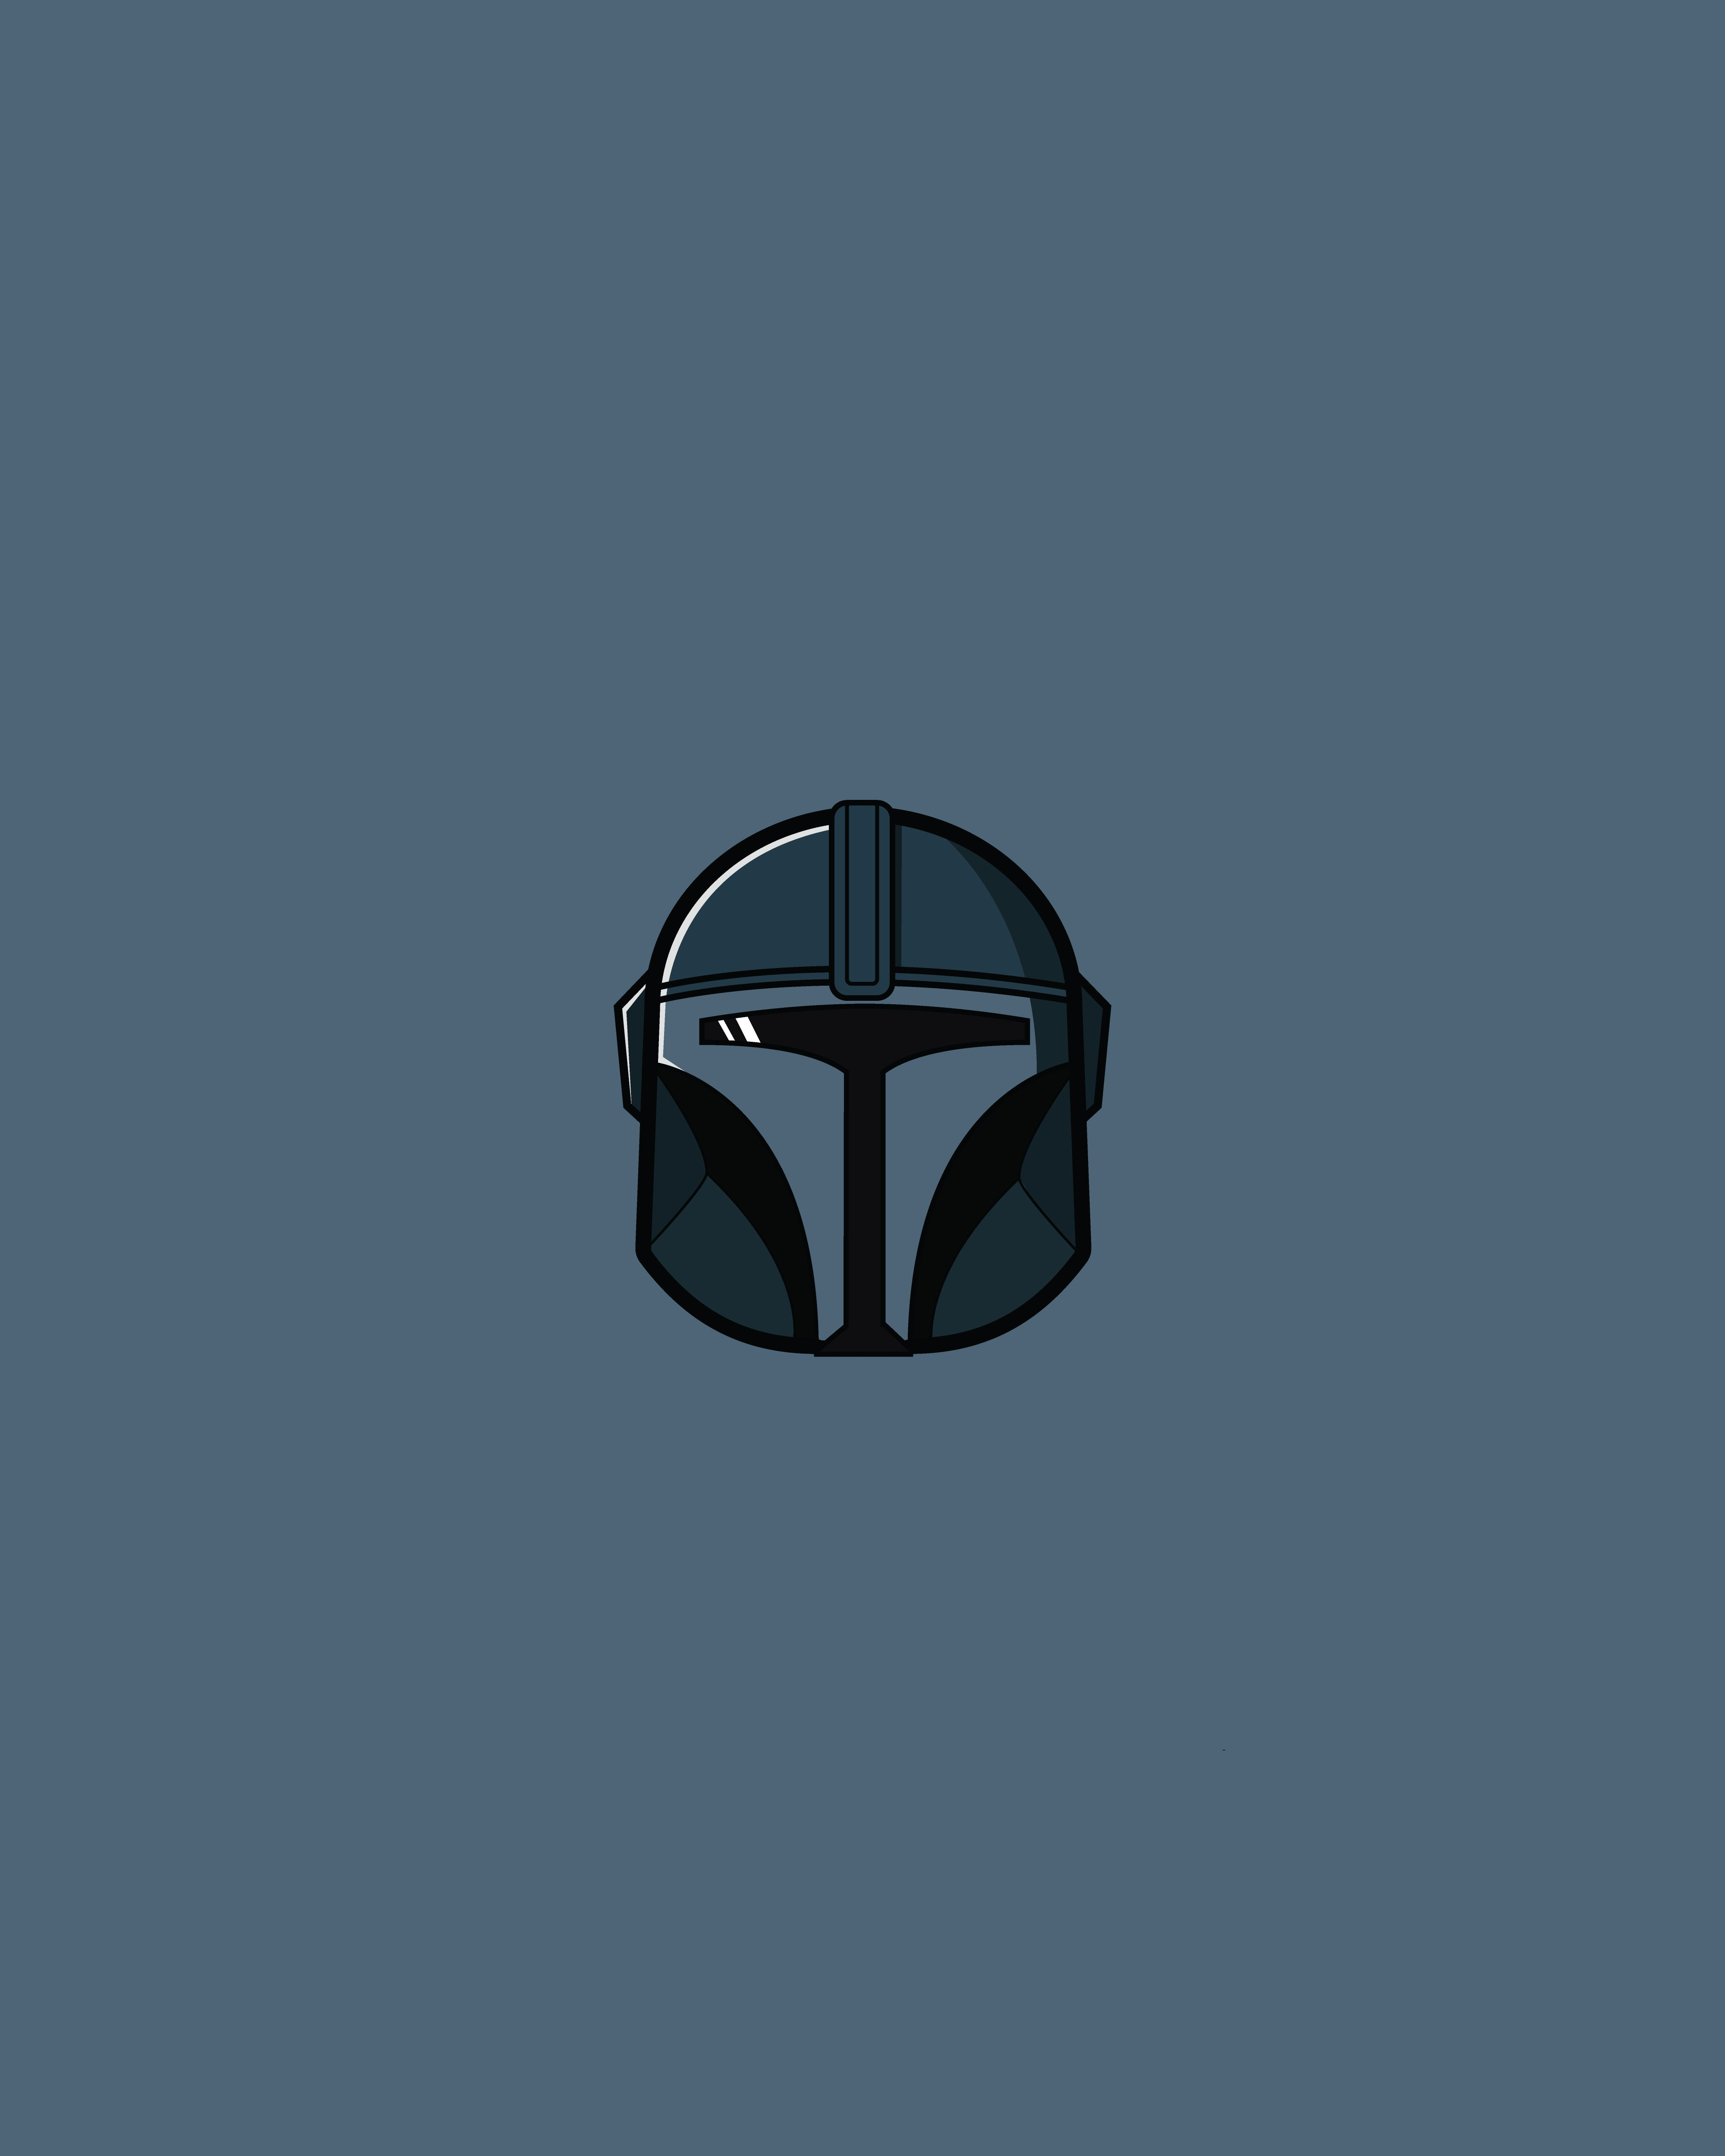 The Mandalorian Star Wars Wallpaper Star Wars Illustration Mandalorian